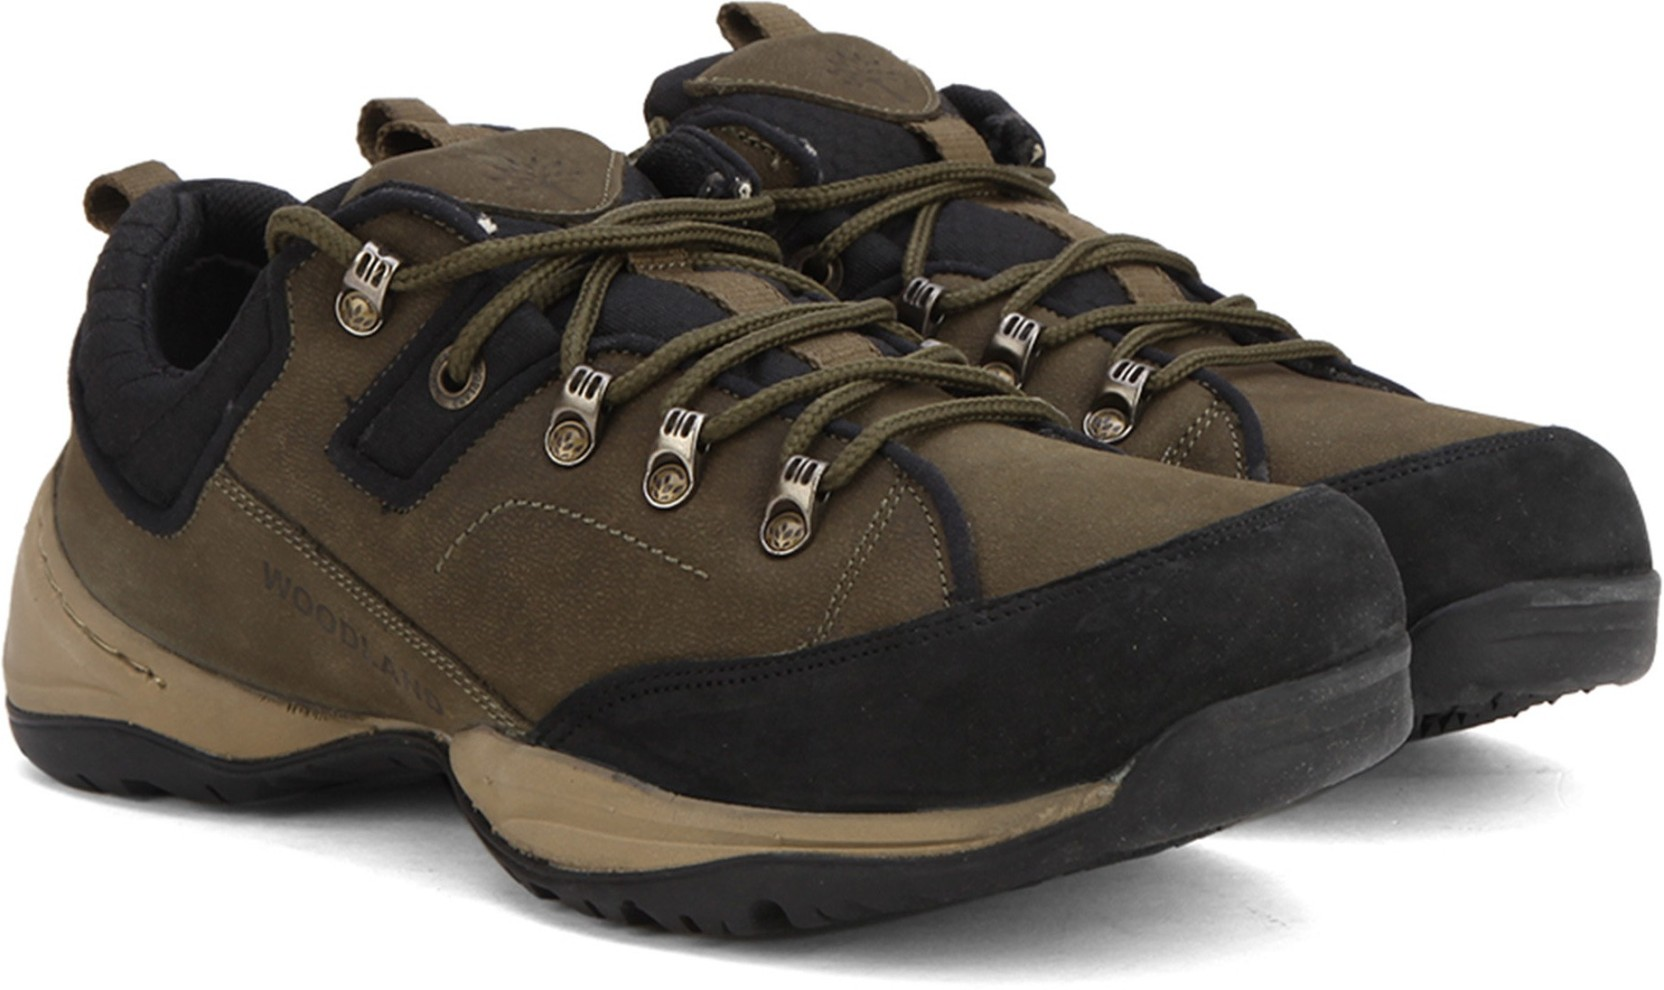 Woodland Leather Sneakers - Buy OLIVE GREEN Color Woodland ...